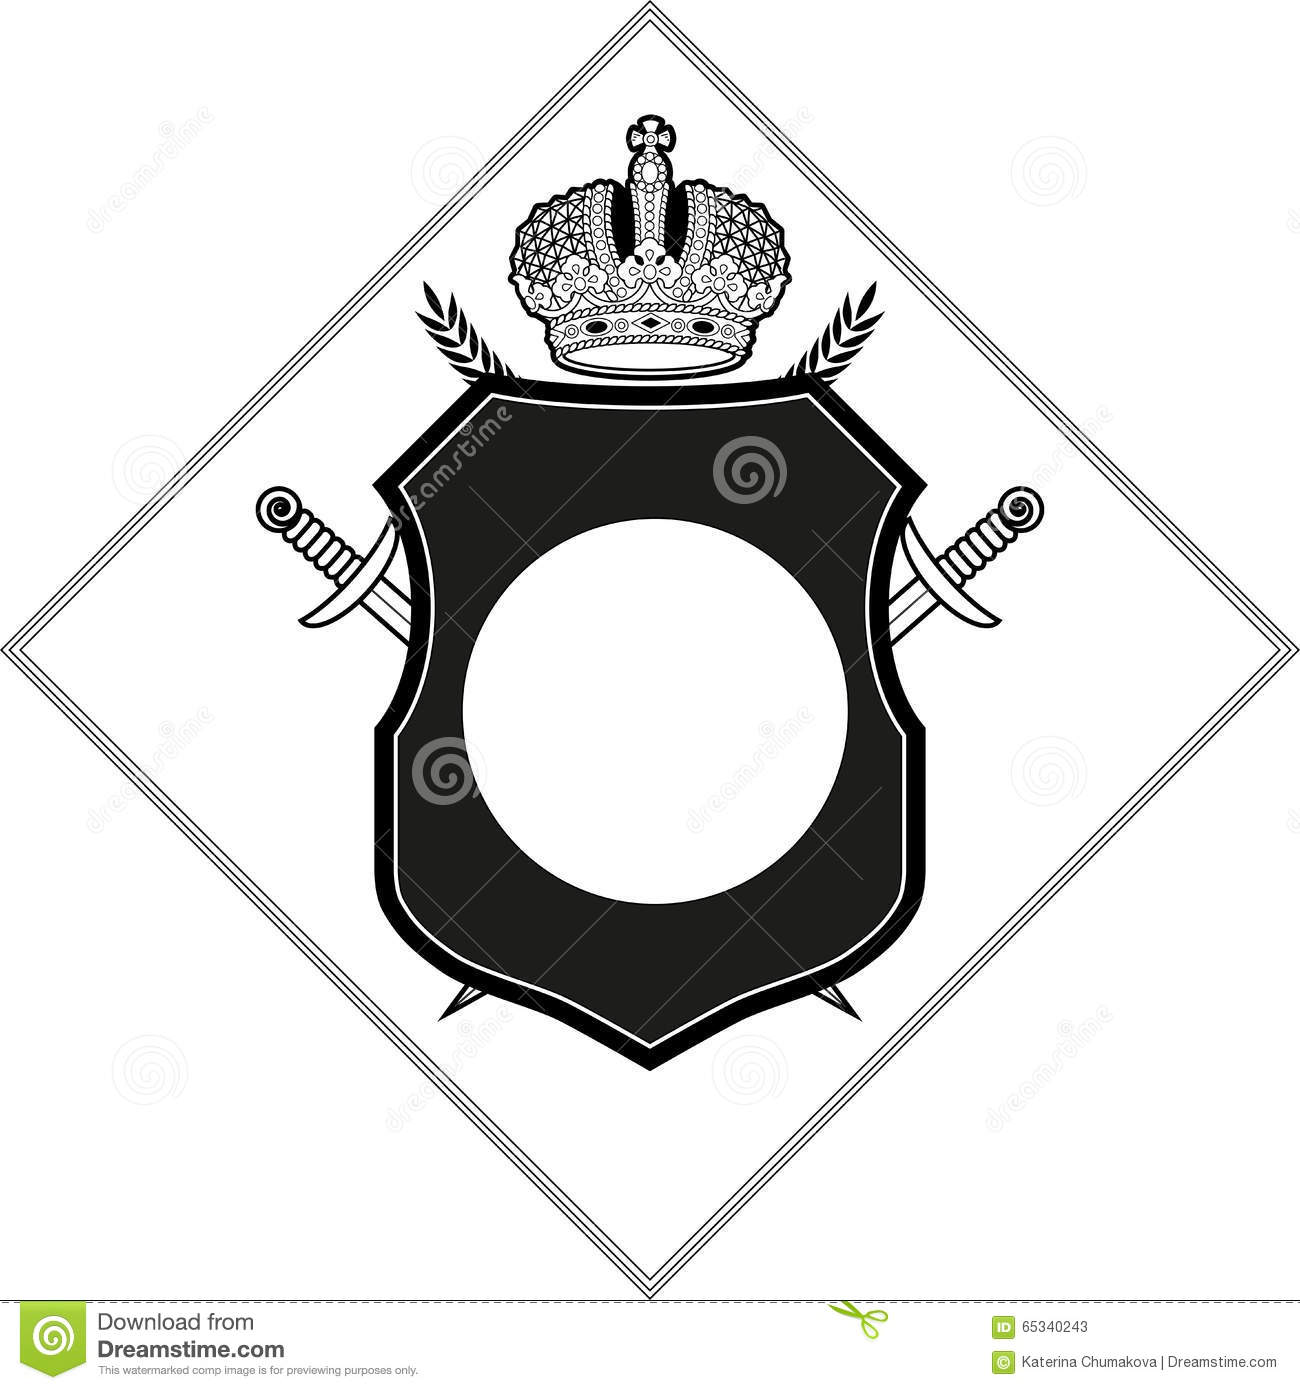 Vector Coat Of Arms Design Template Vector Image 62607877 – Coat of Arms Template